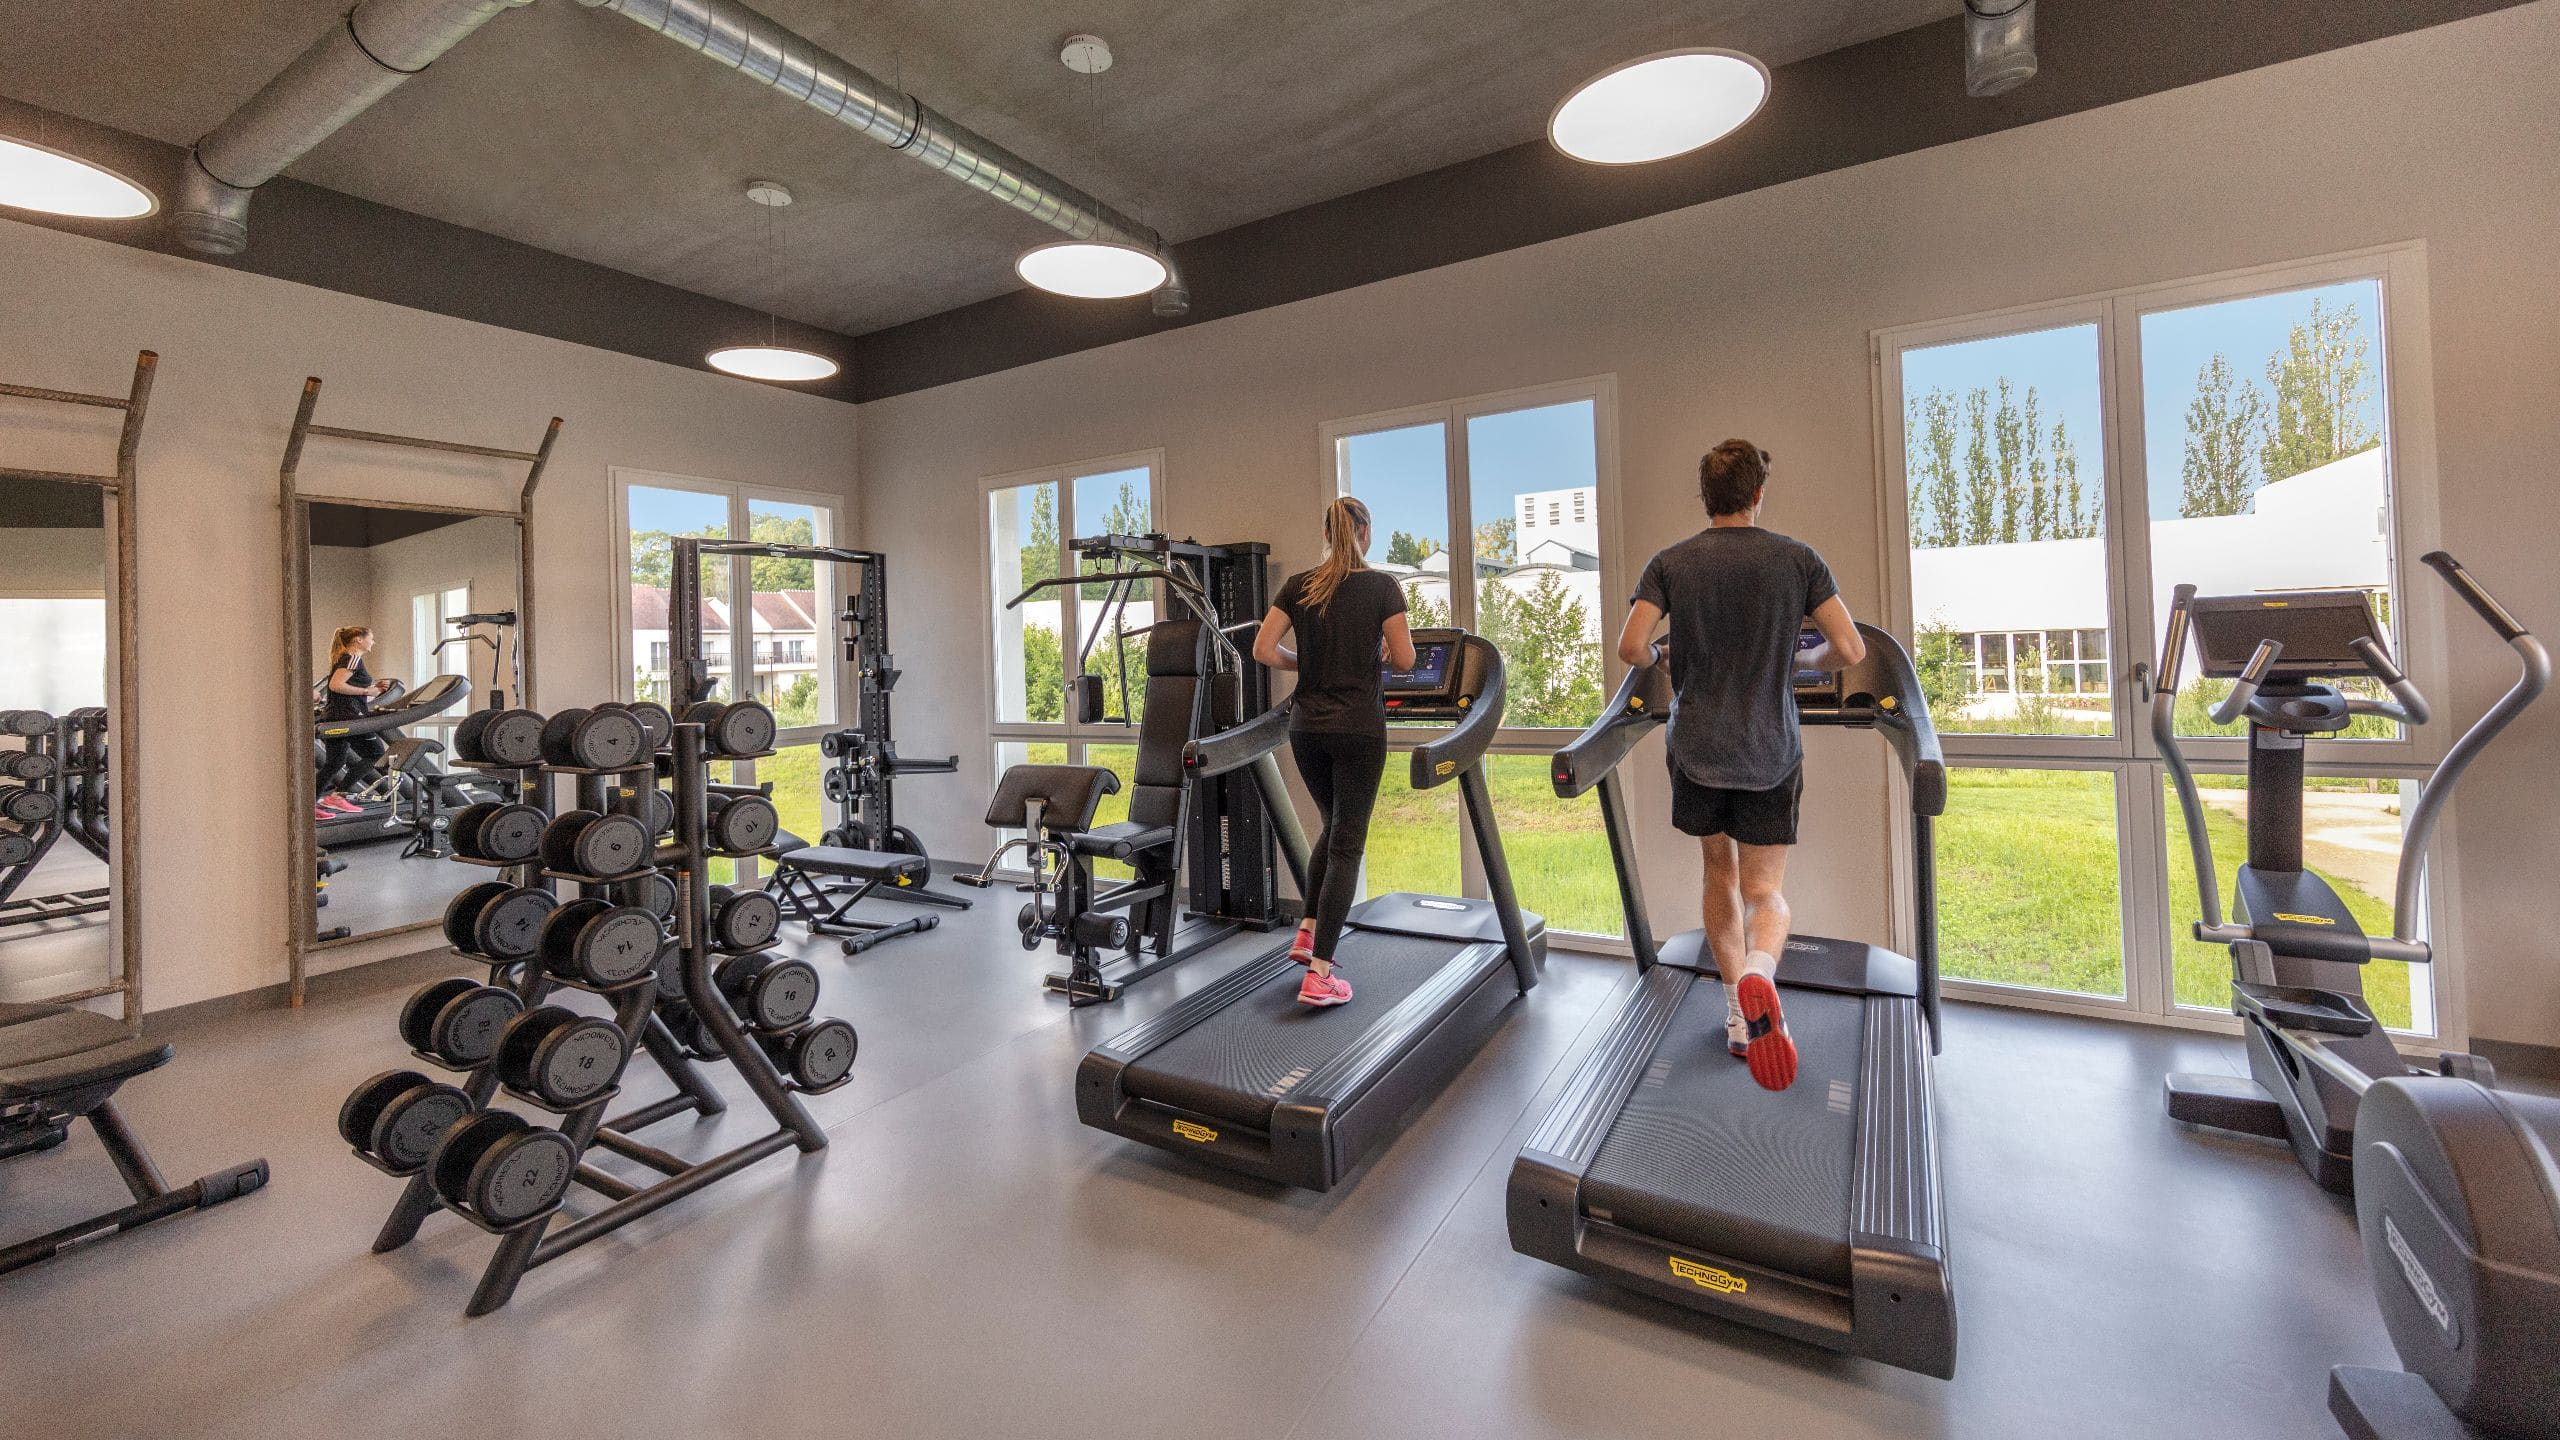 Fitness Center at Hyatt Regency Chantilly - Le Cottage Spa & Wellness